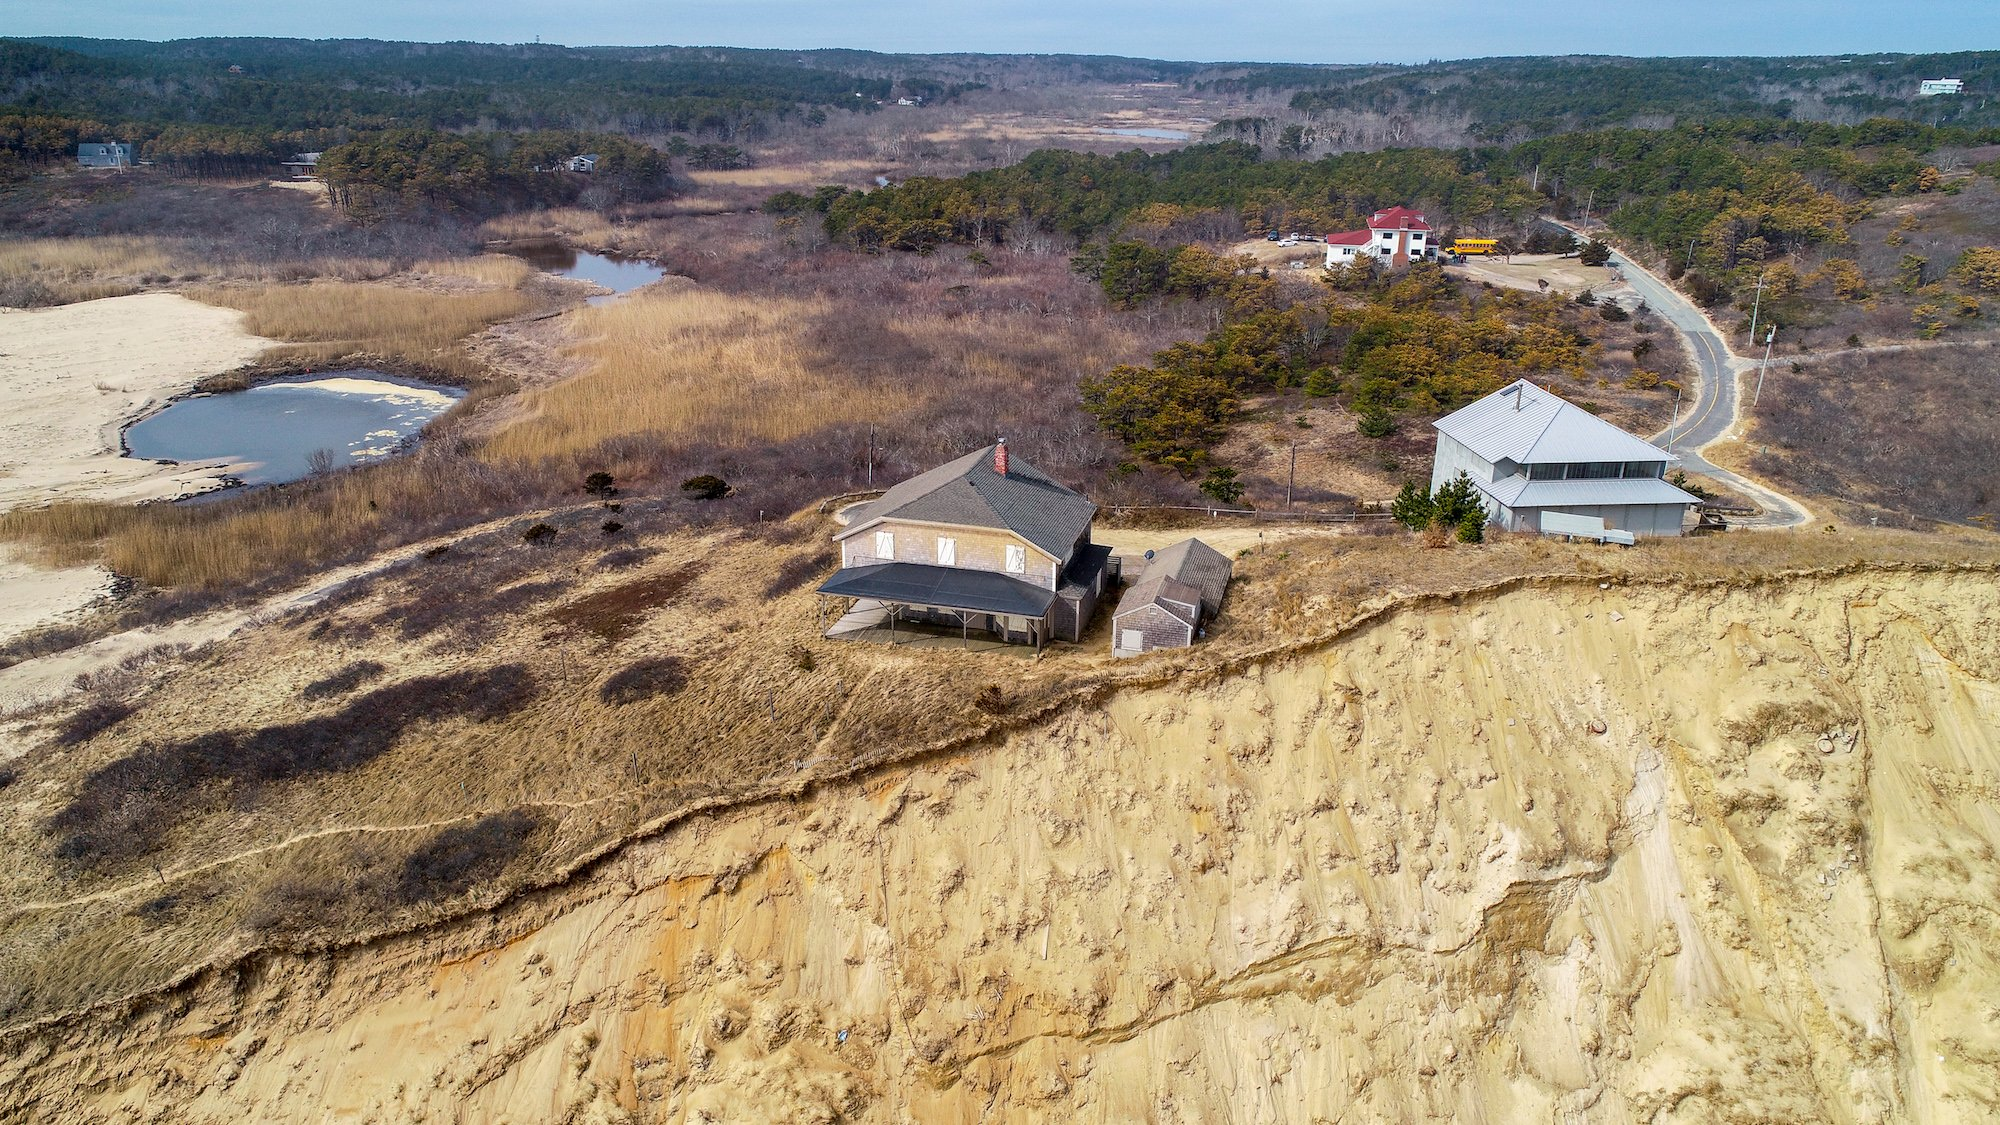 Drone mapping, Truro, MA coastal erosion monitoring, ARE UAS Services